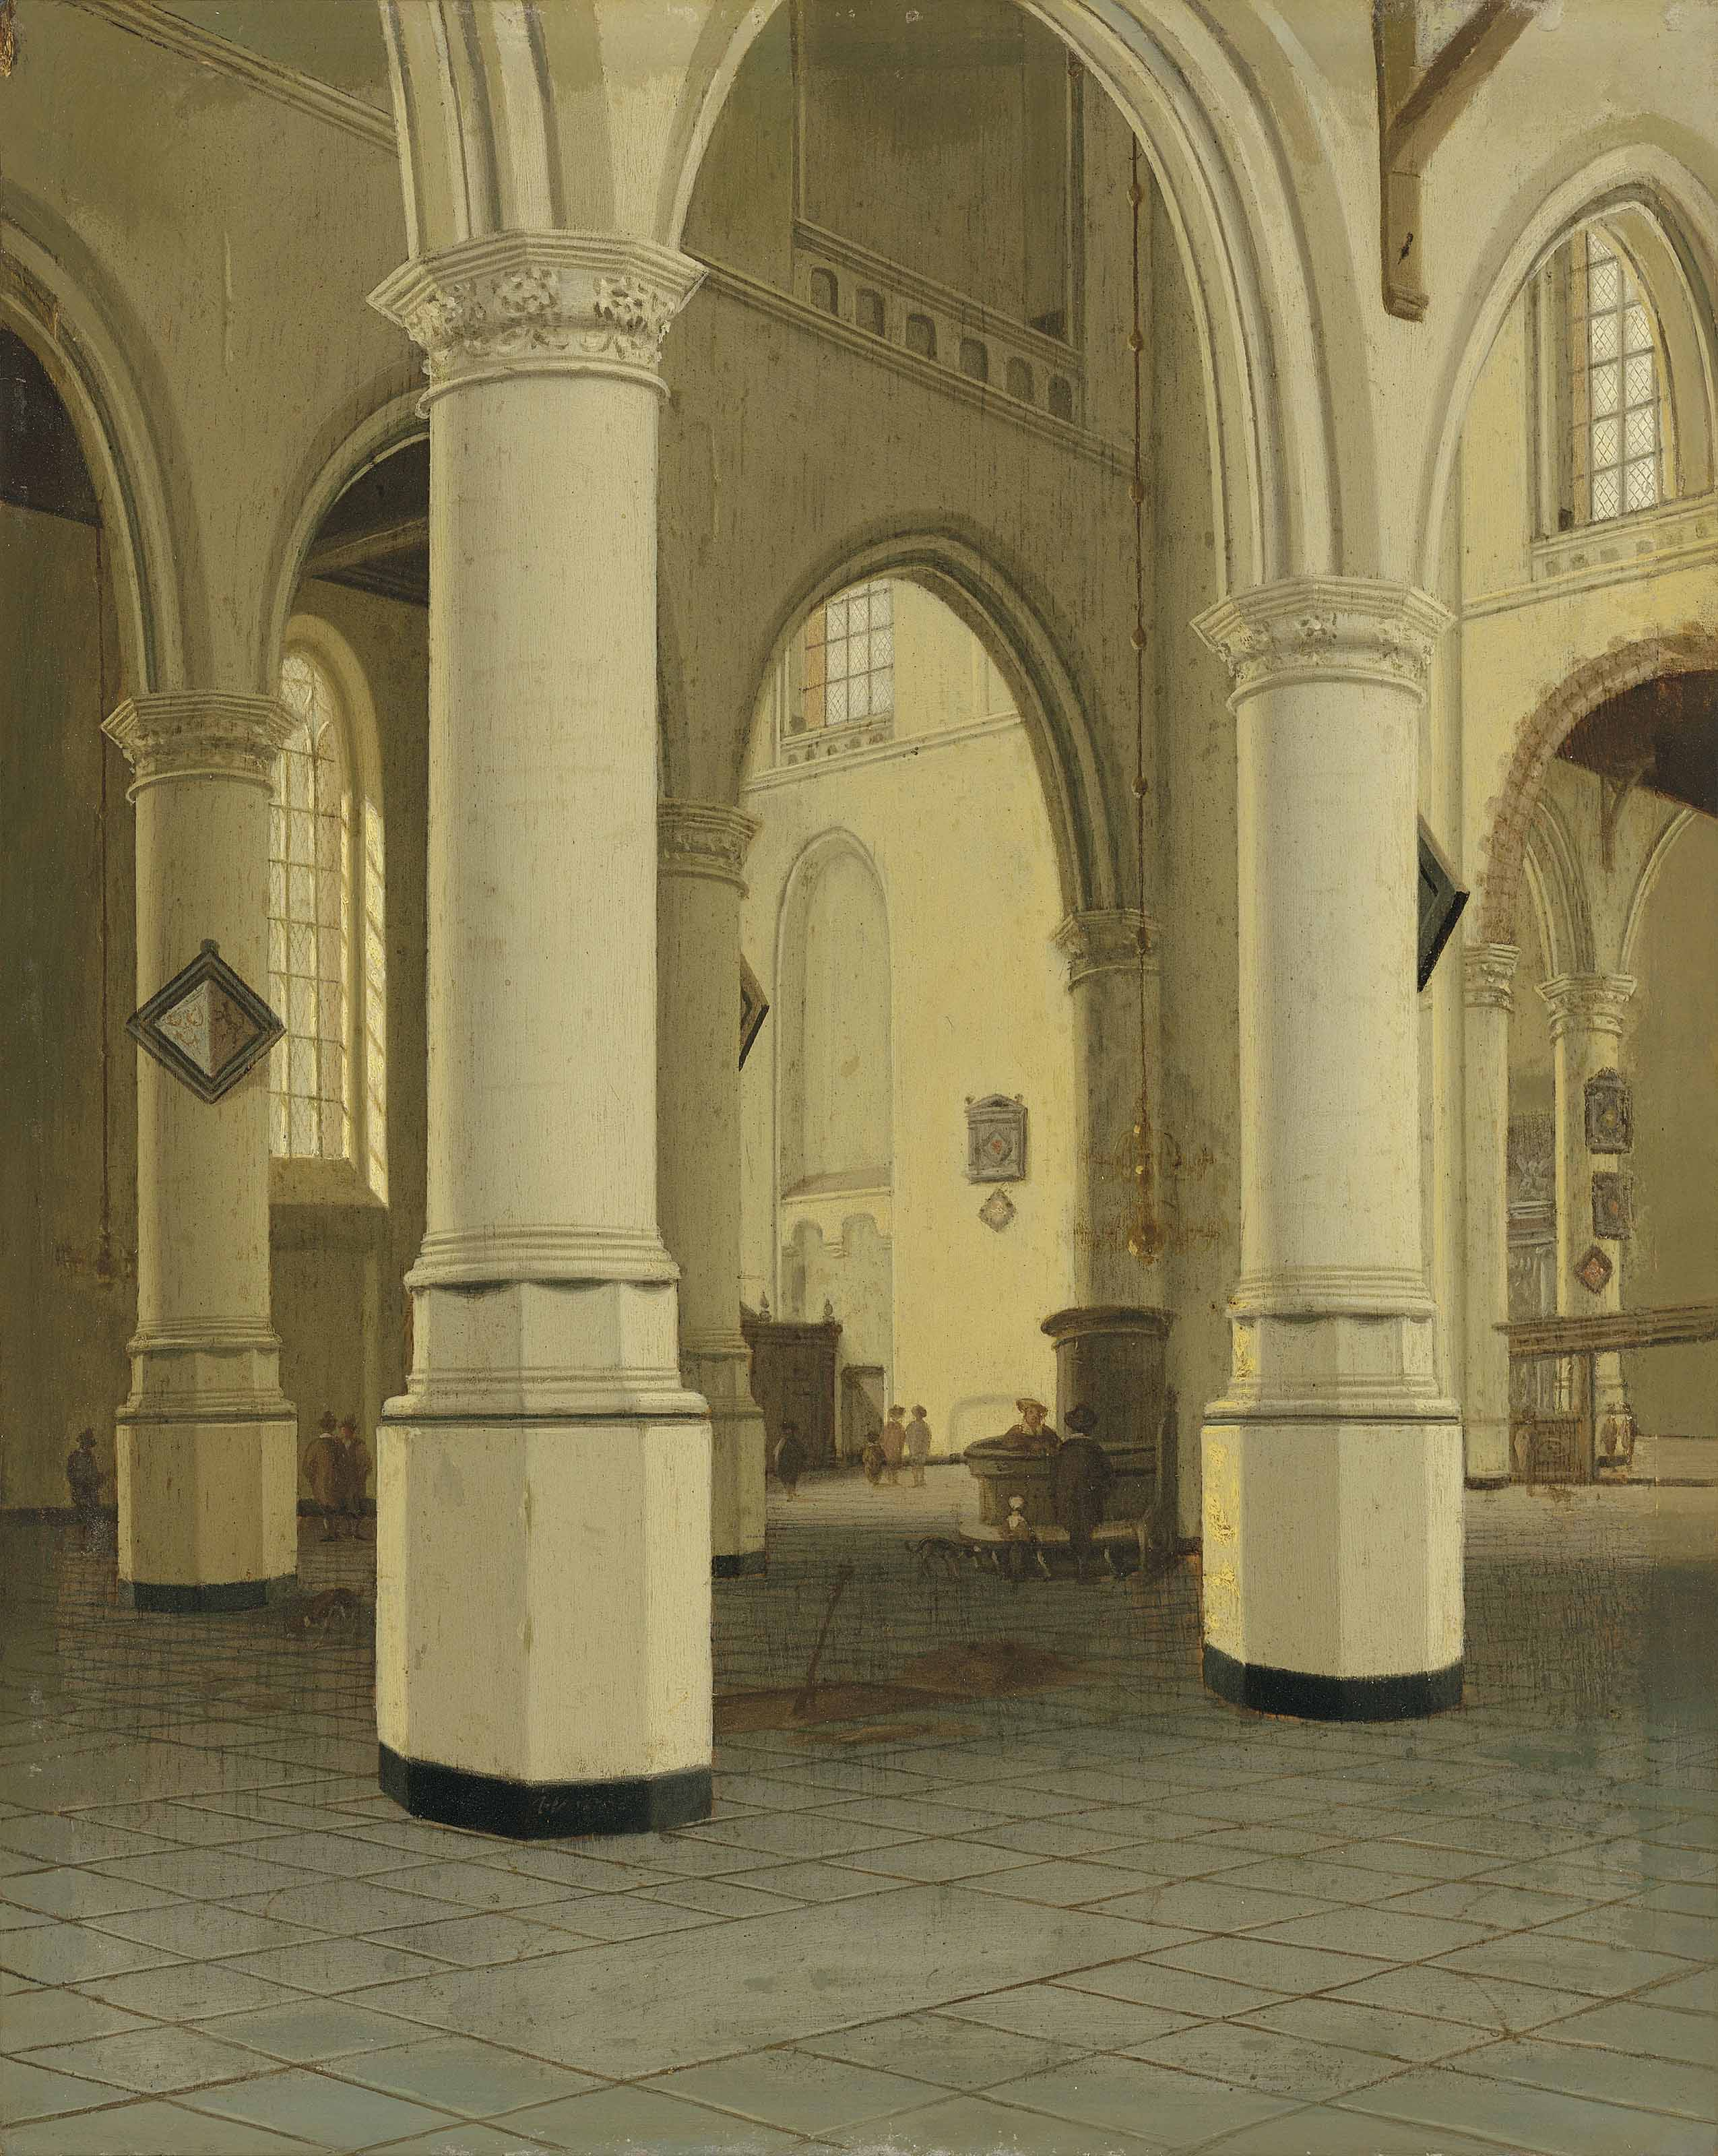 Interior of the Nieuwe Kerk in Delft